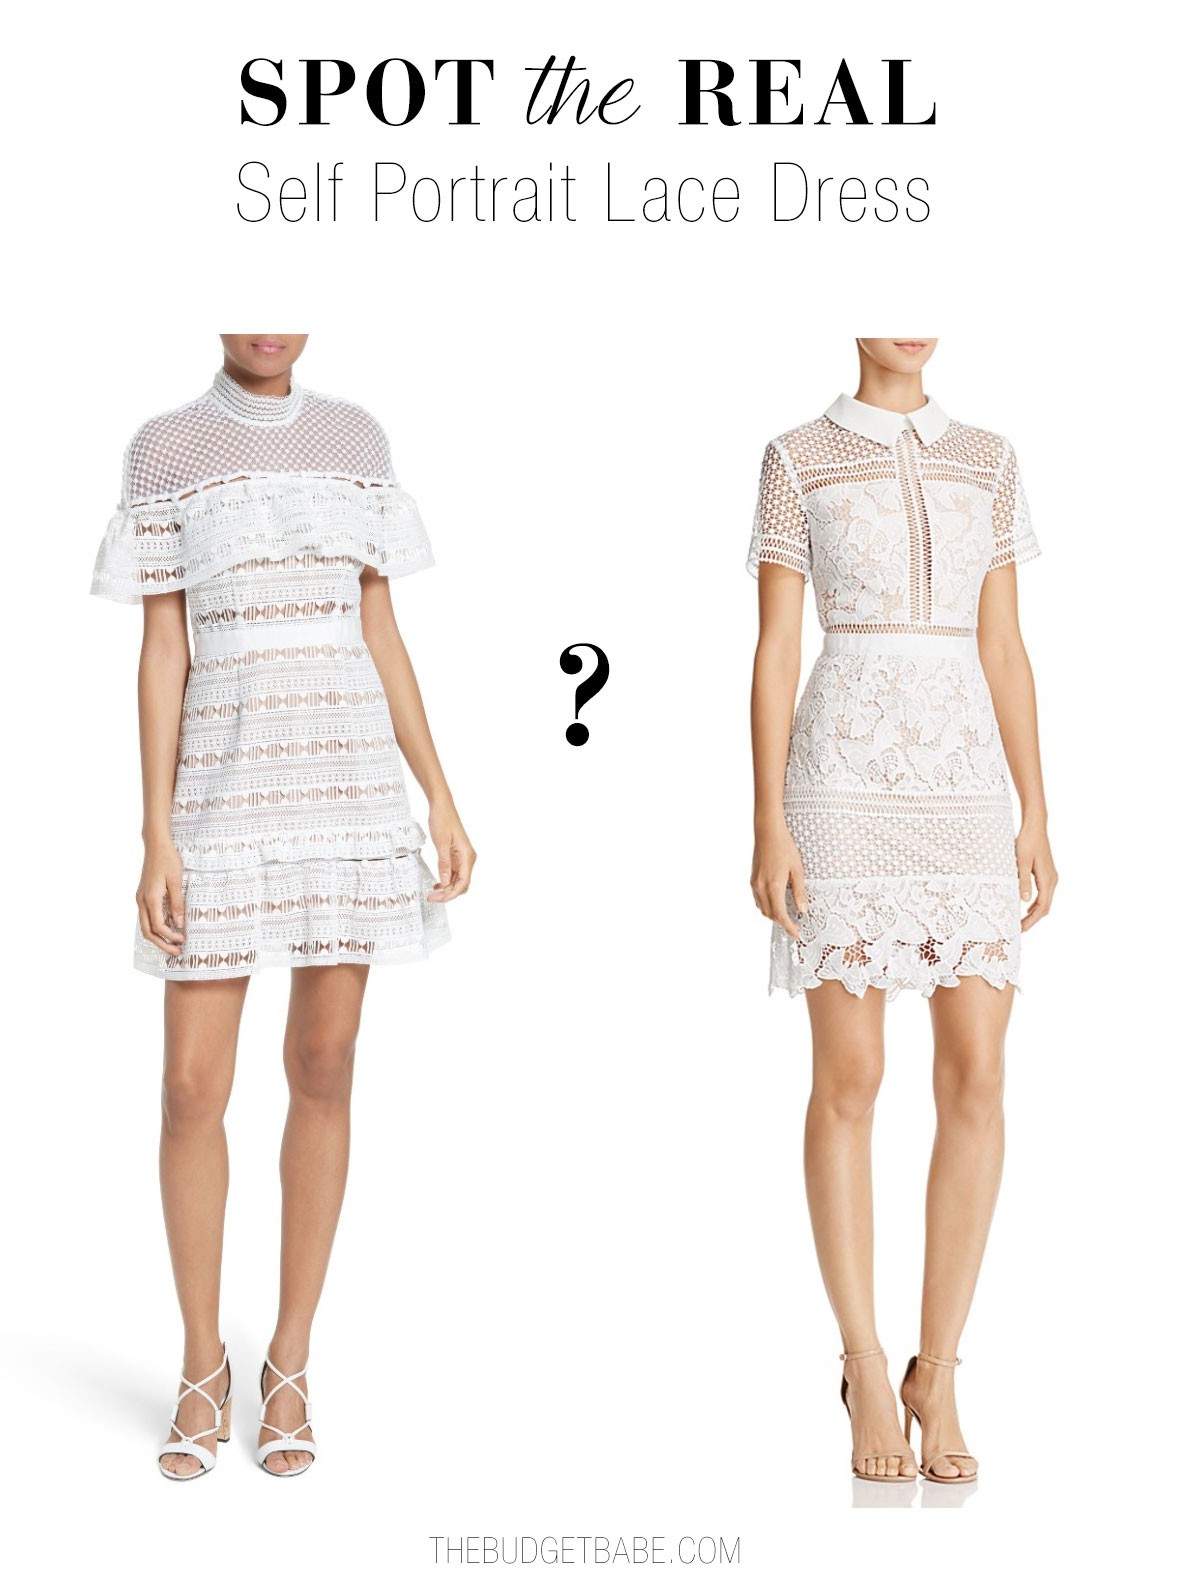 Can you guess which is the real Self Portrait lace dress?